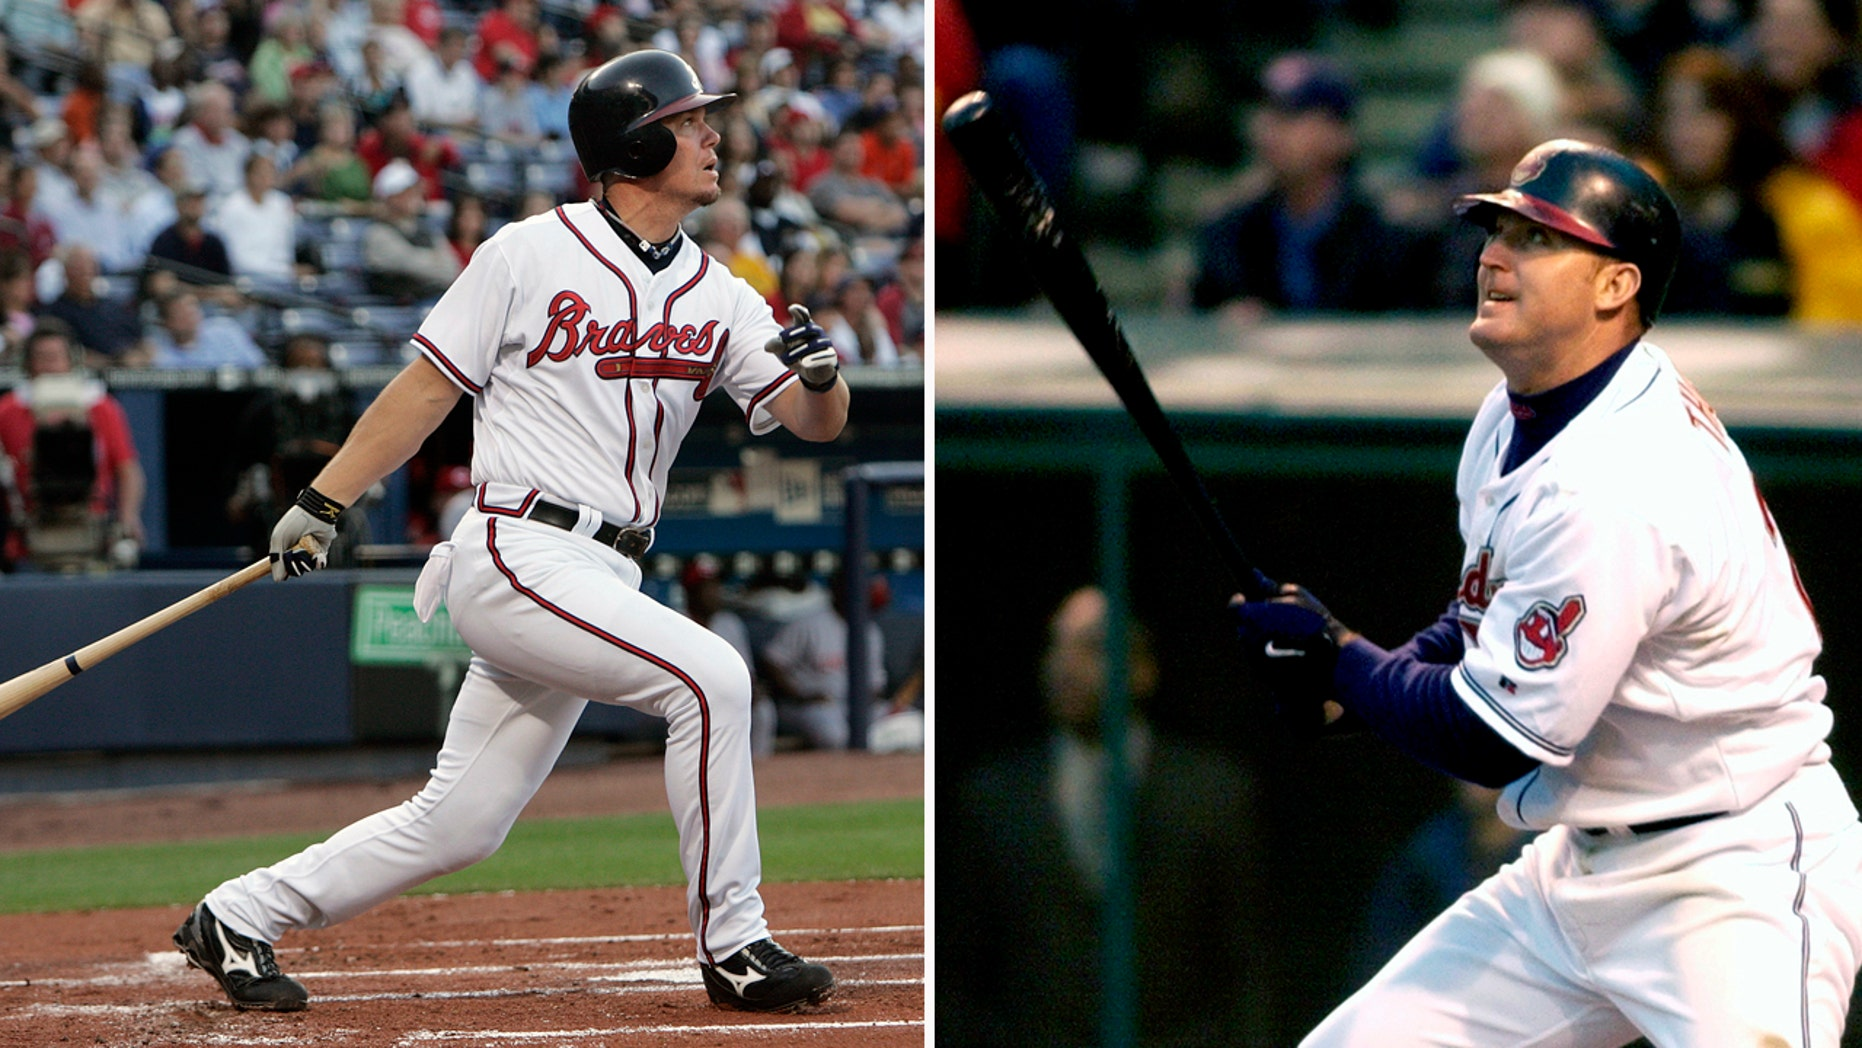 Chipper Jones, left, and Jim Thome were elected with more than 85 percent of the vote in their first year of eligibility.